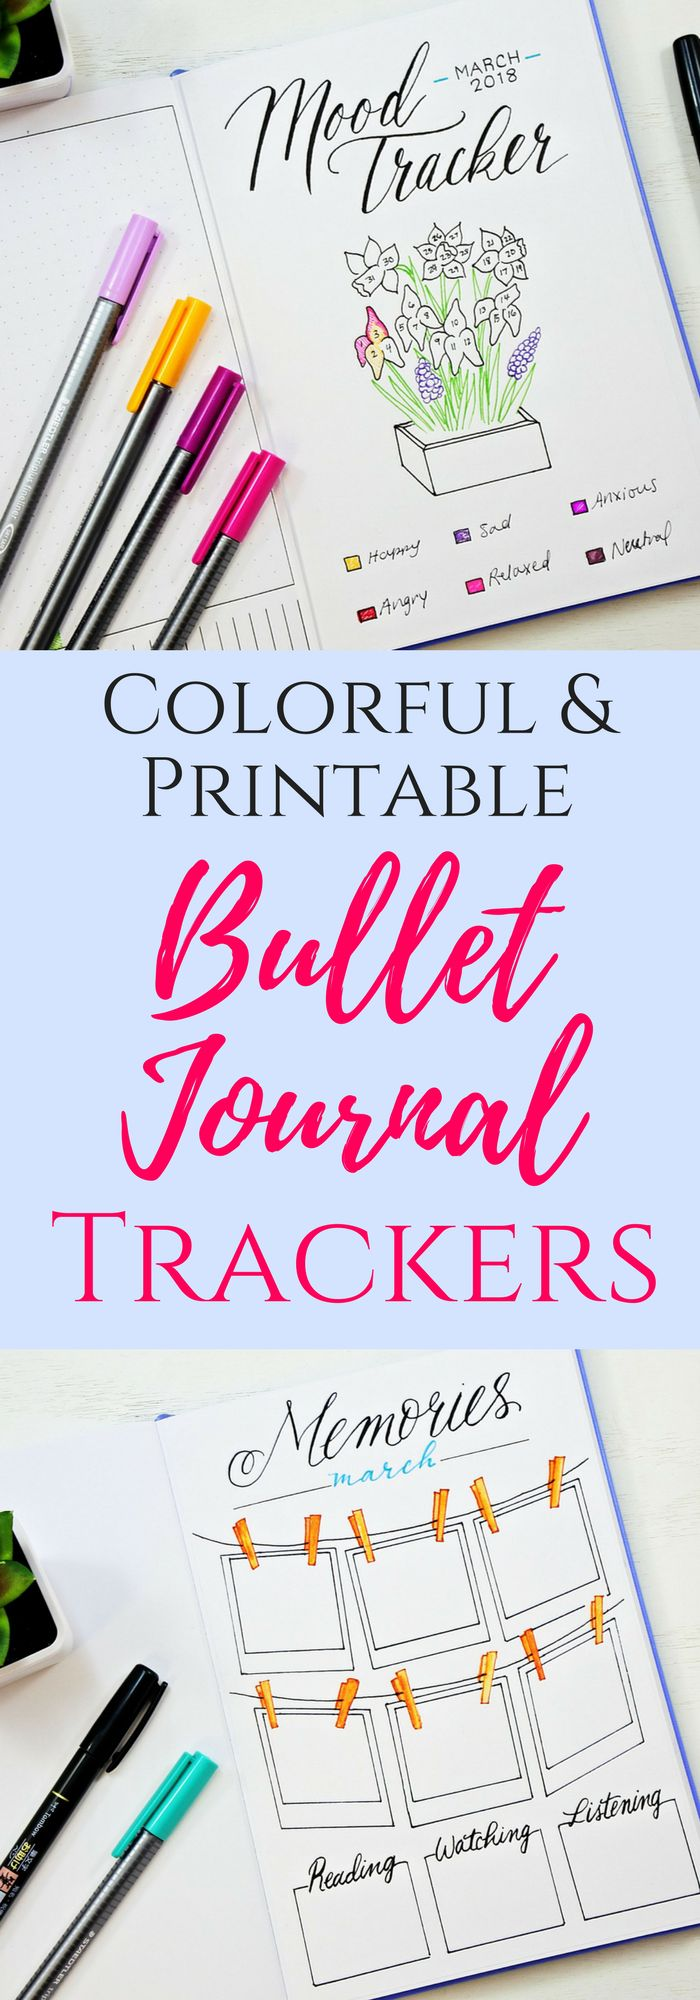 Mood tracker, habit tracker, bullet journal memories, gratitude log. #bulletjournaltracker #bulletjournaling